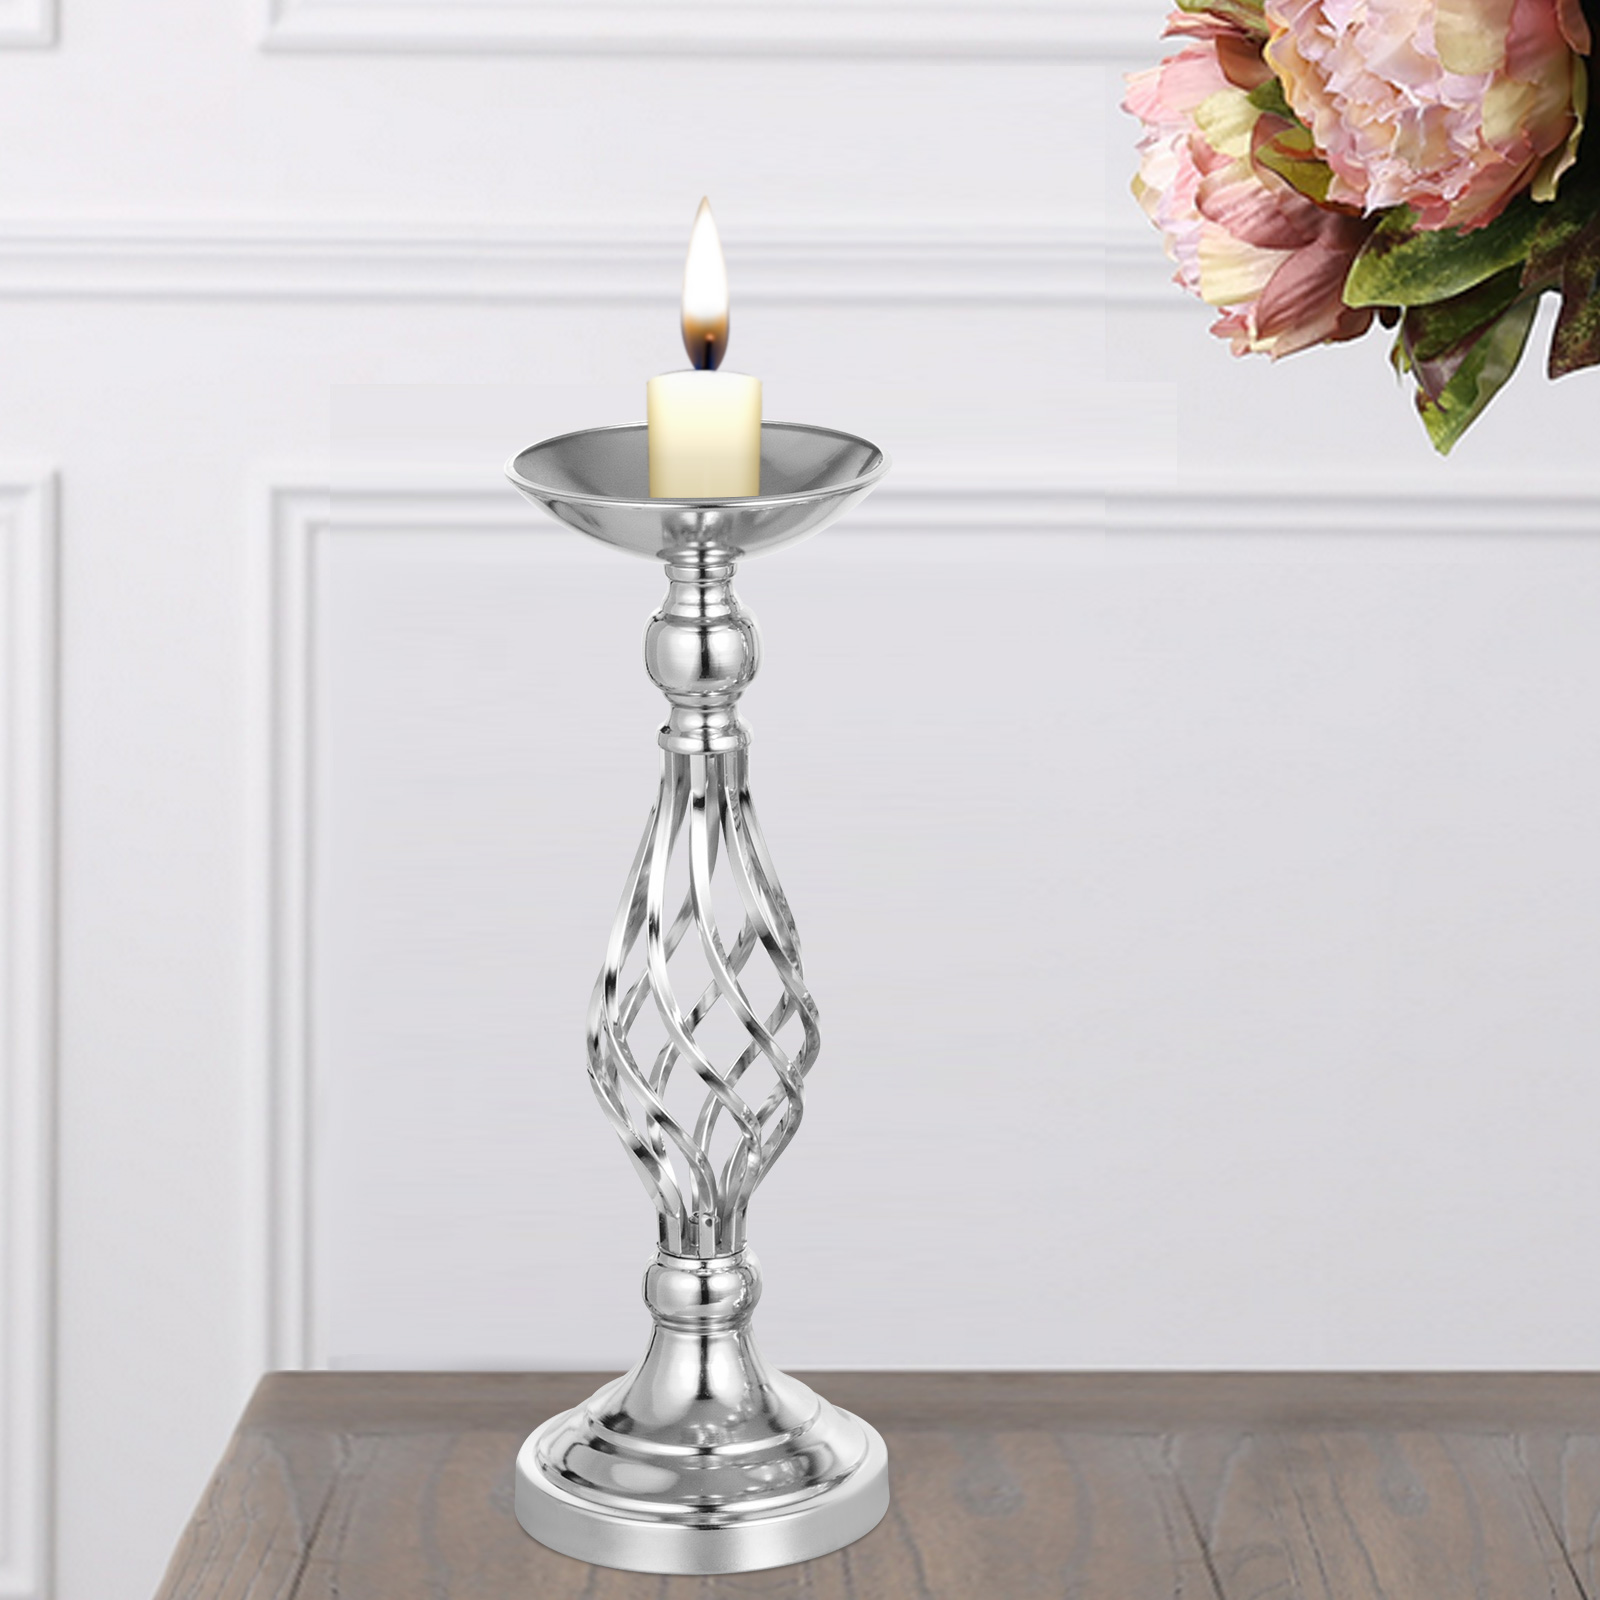 Flower-Rack-for-Wedding-Metal-Candle-Stand-4-11pcs-Centerpiece-Flower-Vase thumbnail 46